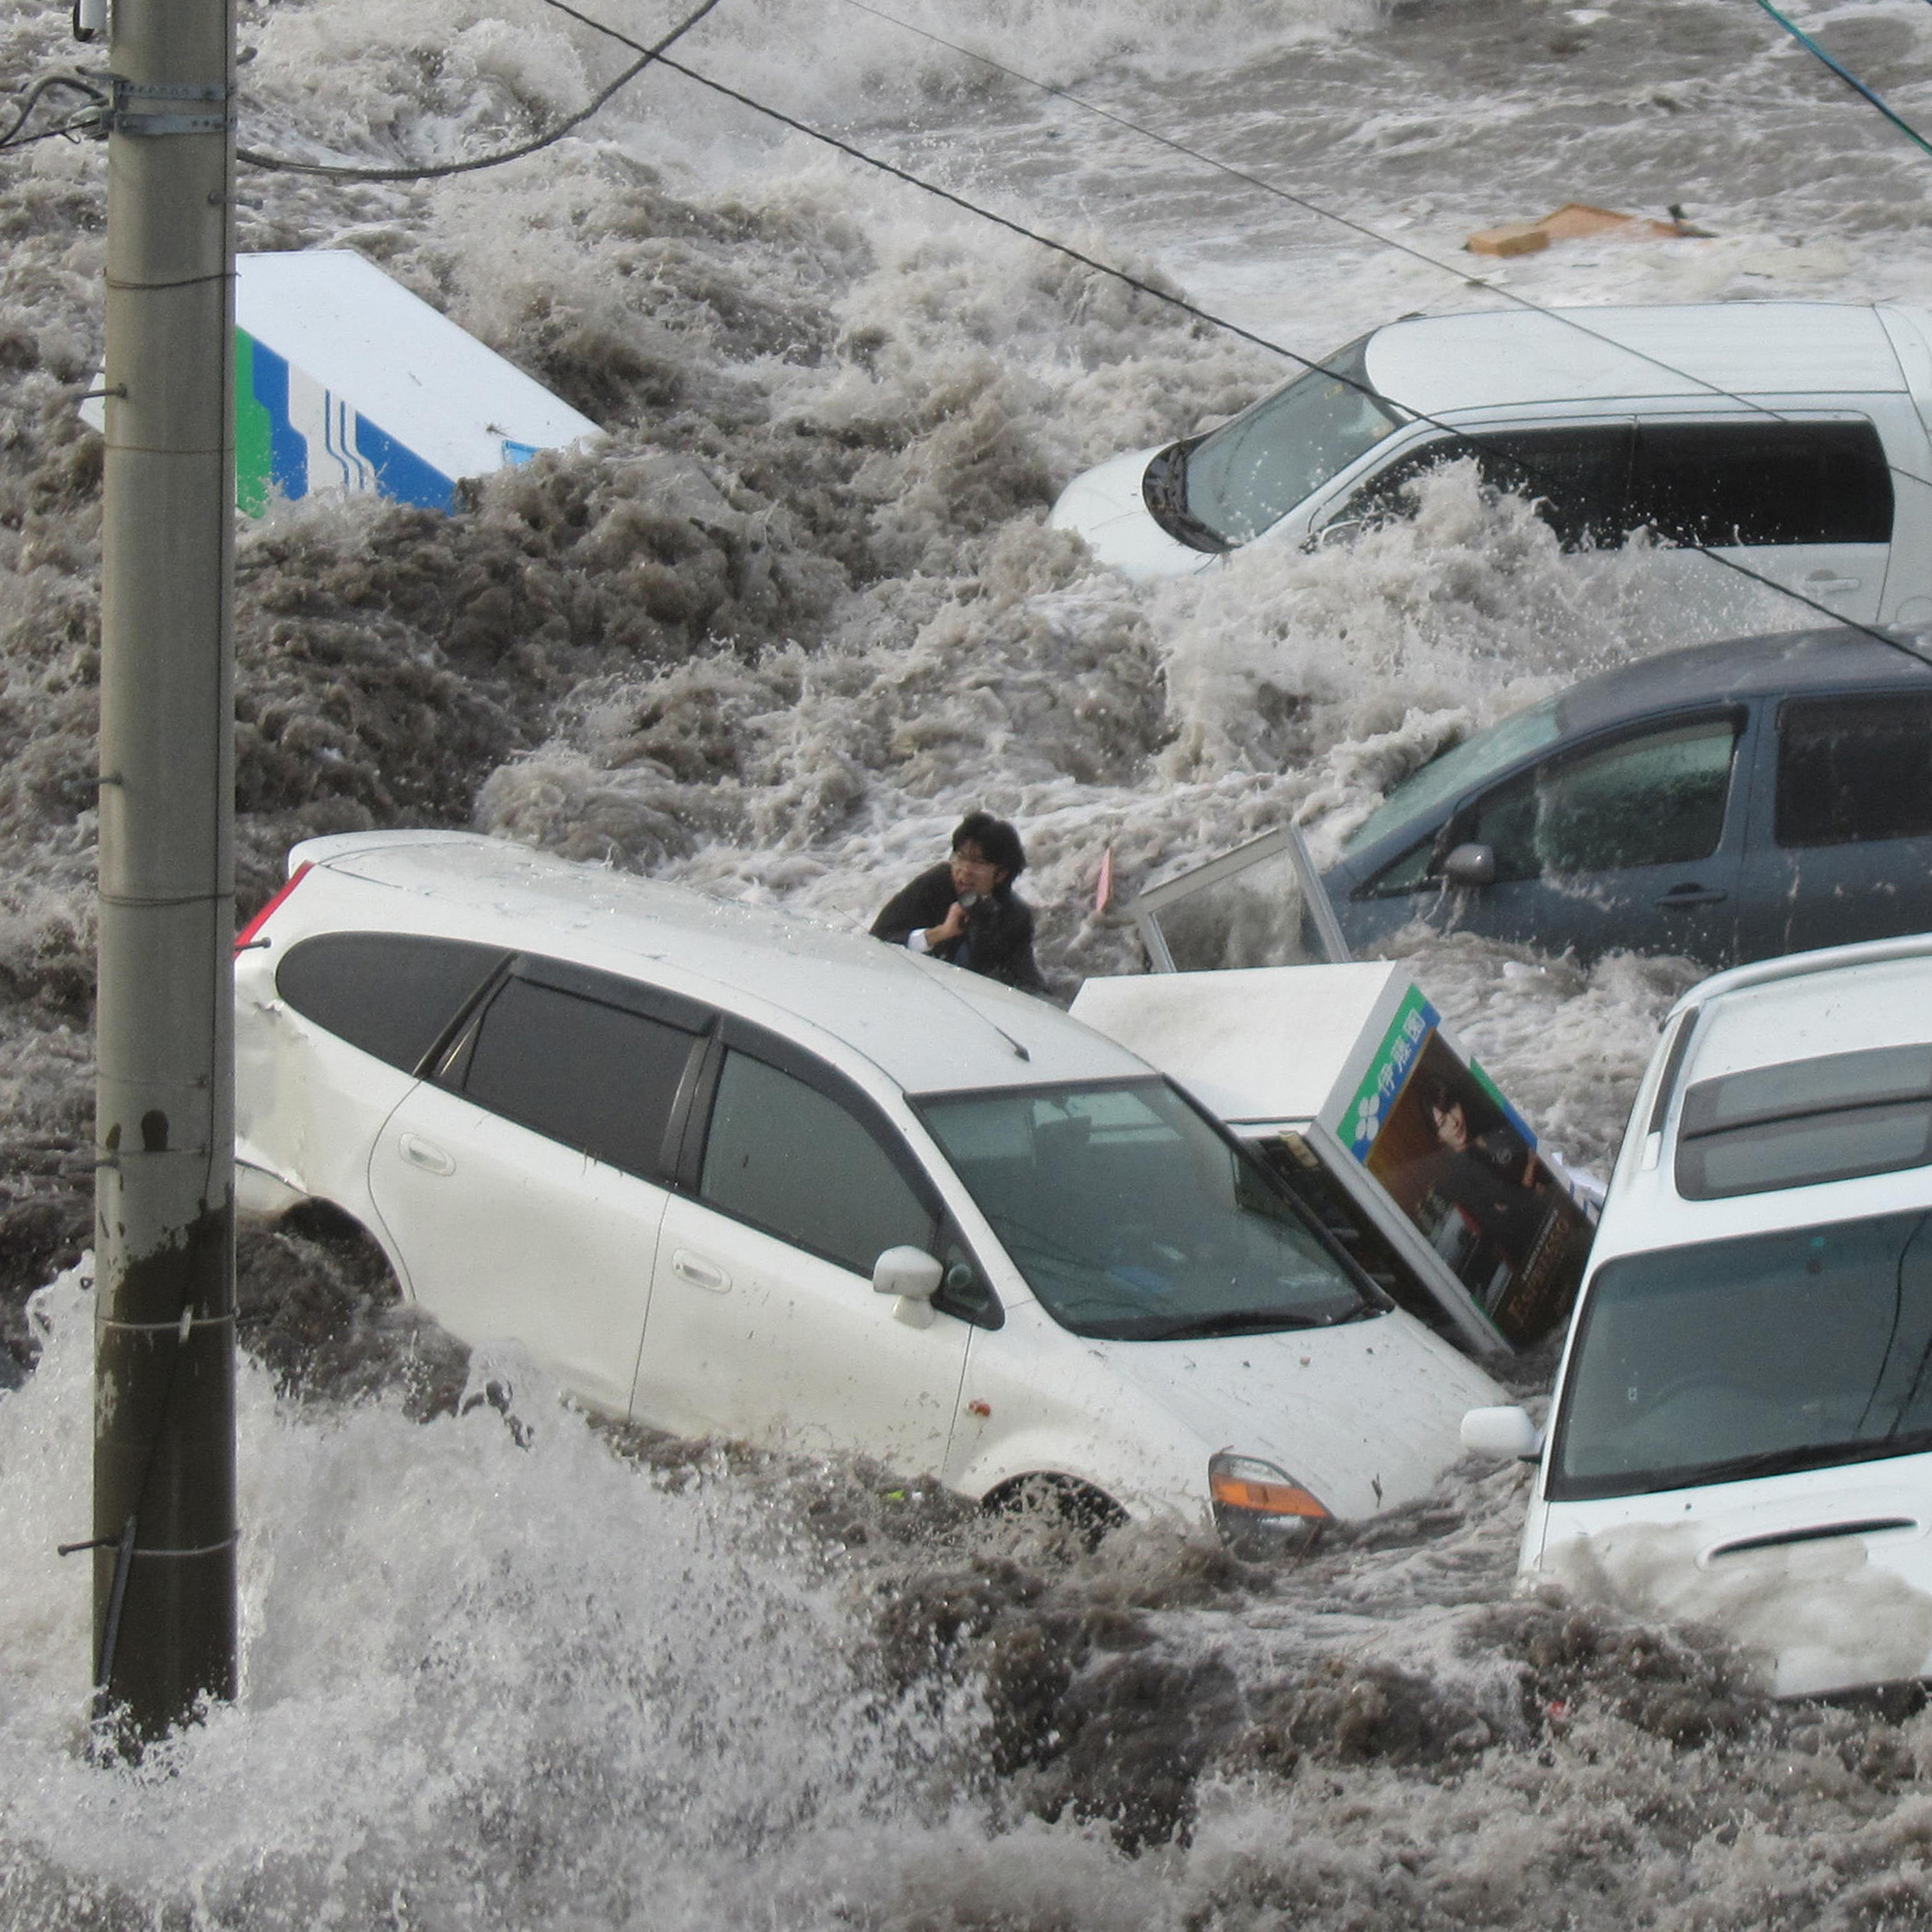 Toya Chiba, a reporter for local newspaper Iwate Tokai Shimbun, is swept by a tsunami at Kamaishi port